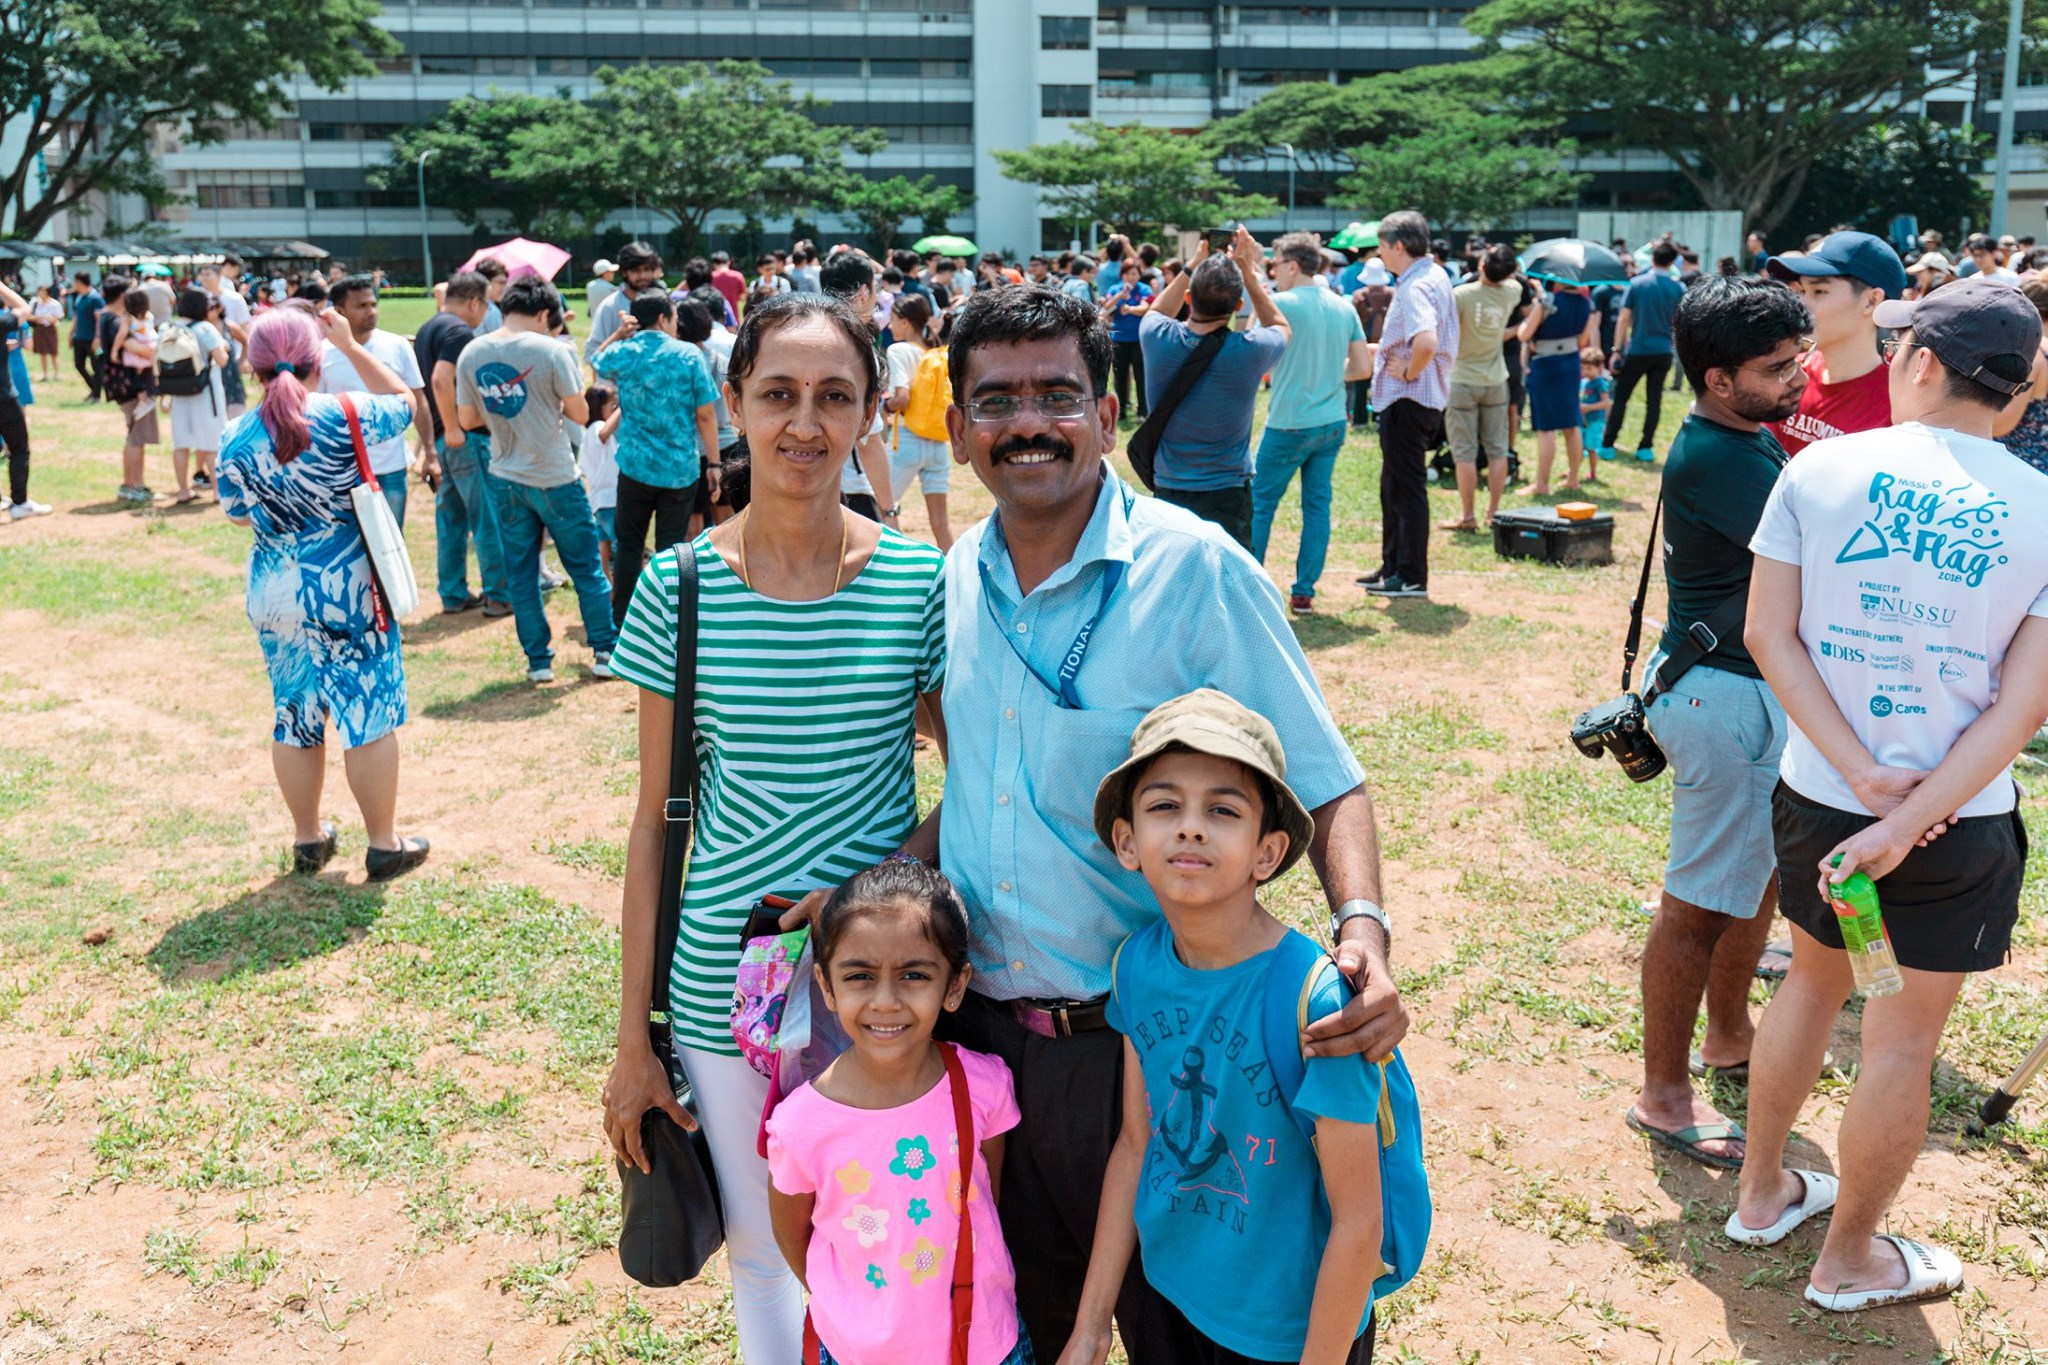 NUS Yong Loo Lin School of Medicine Asst Prof Karthik Mallilankarama and his family went down to the NUS Field to witness the eclipse. Photo courtesy: NUS